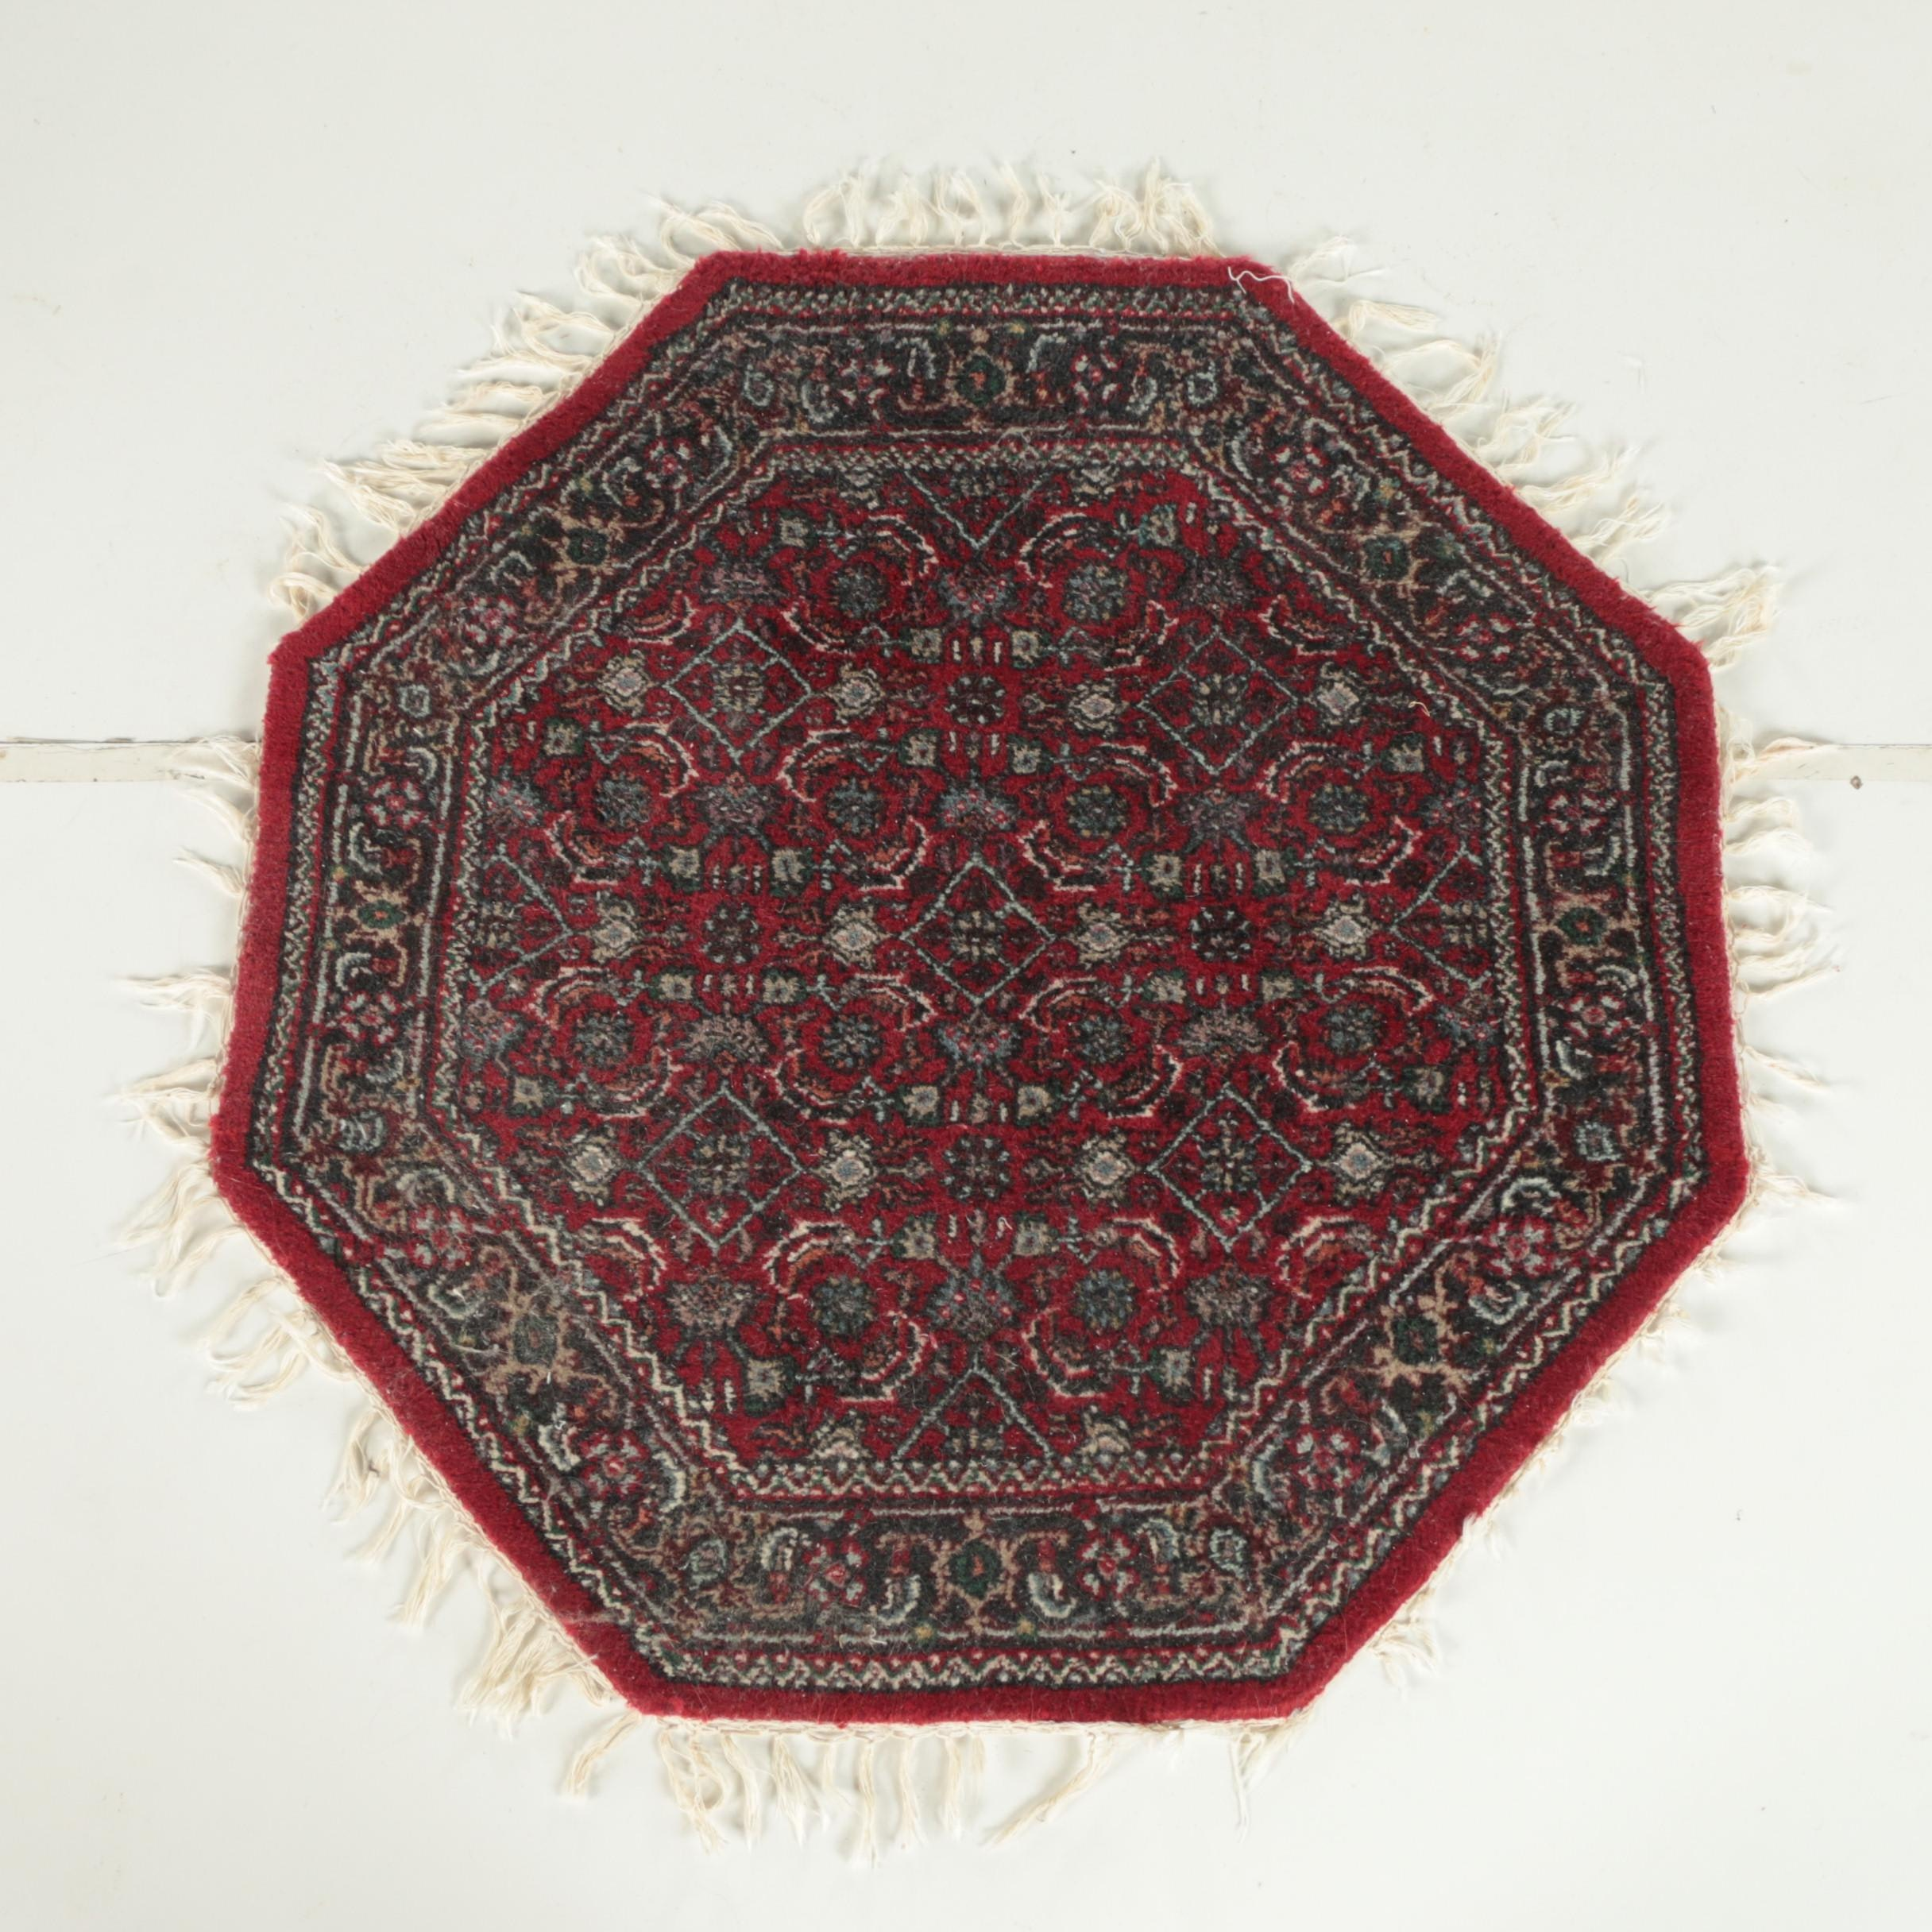 Hand-Knotted Indo-Persian Octagonal Wool Accent Rug